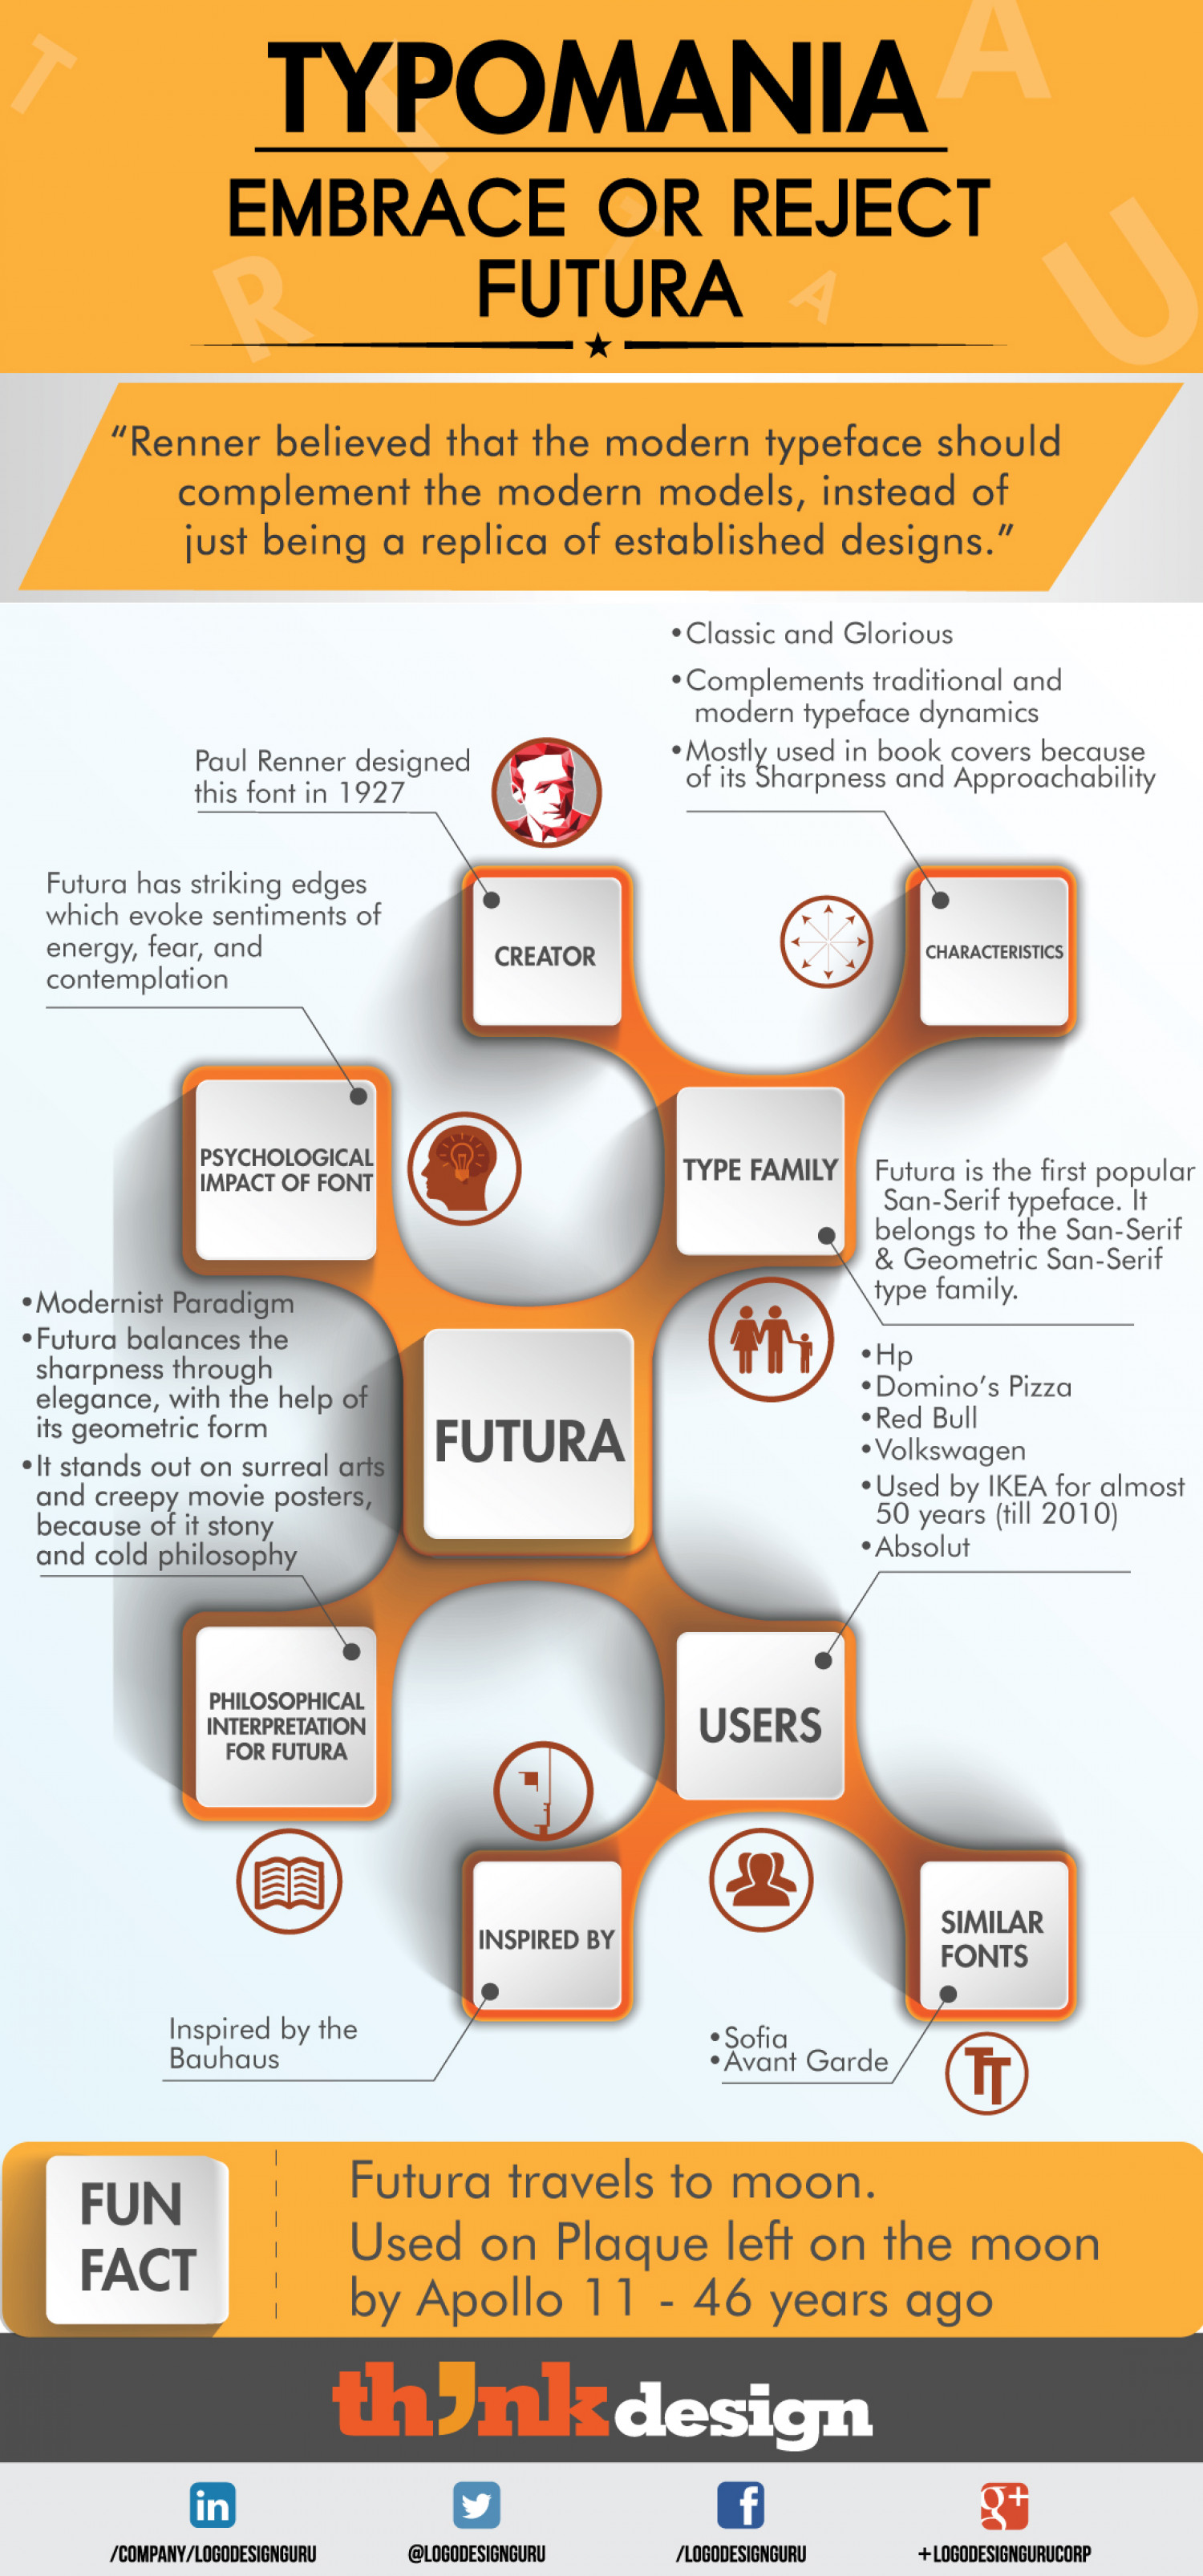 Typomania: Embrace or Reject Futura! Infographic